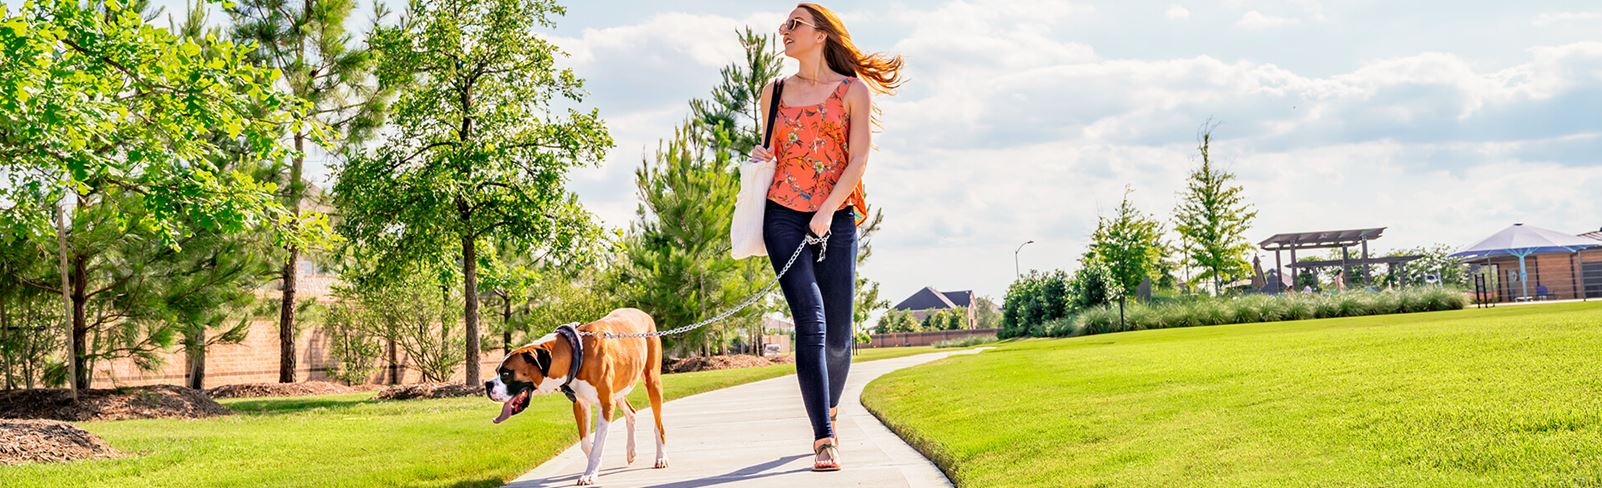 Elyson resident walking dog in Elyson community Katy, TX